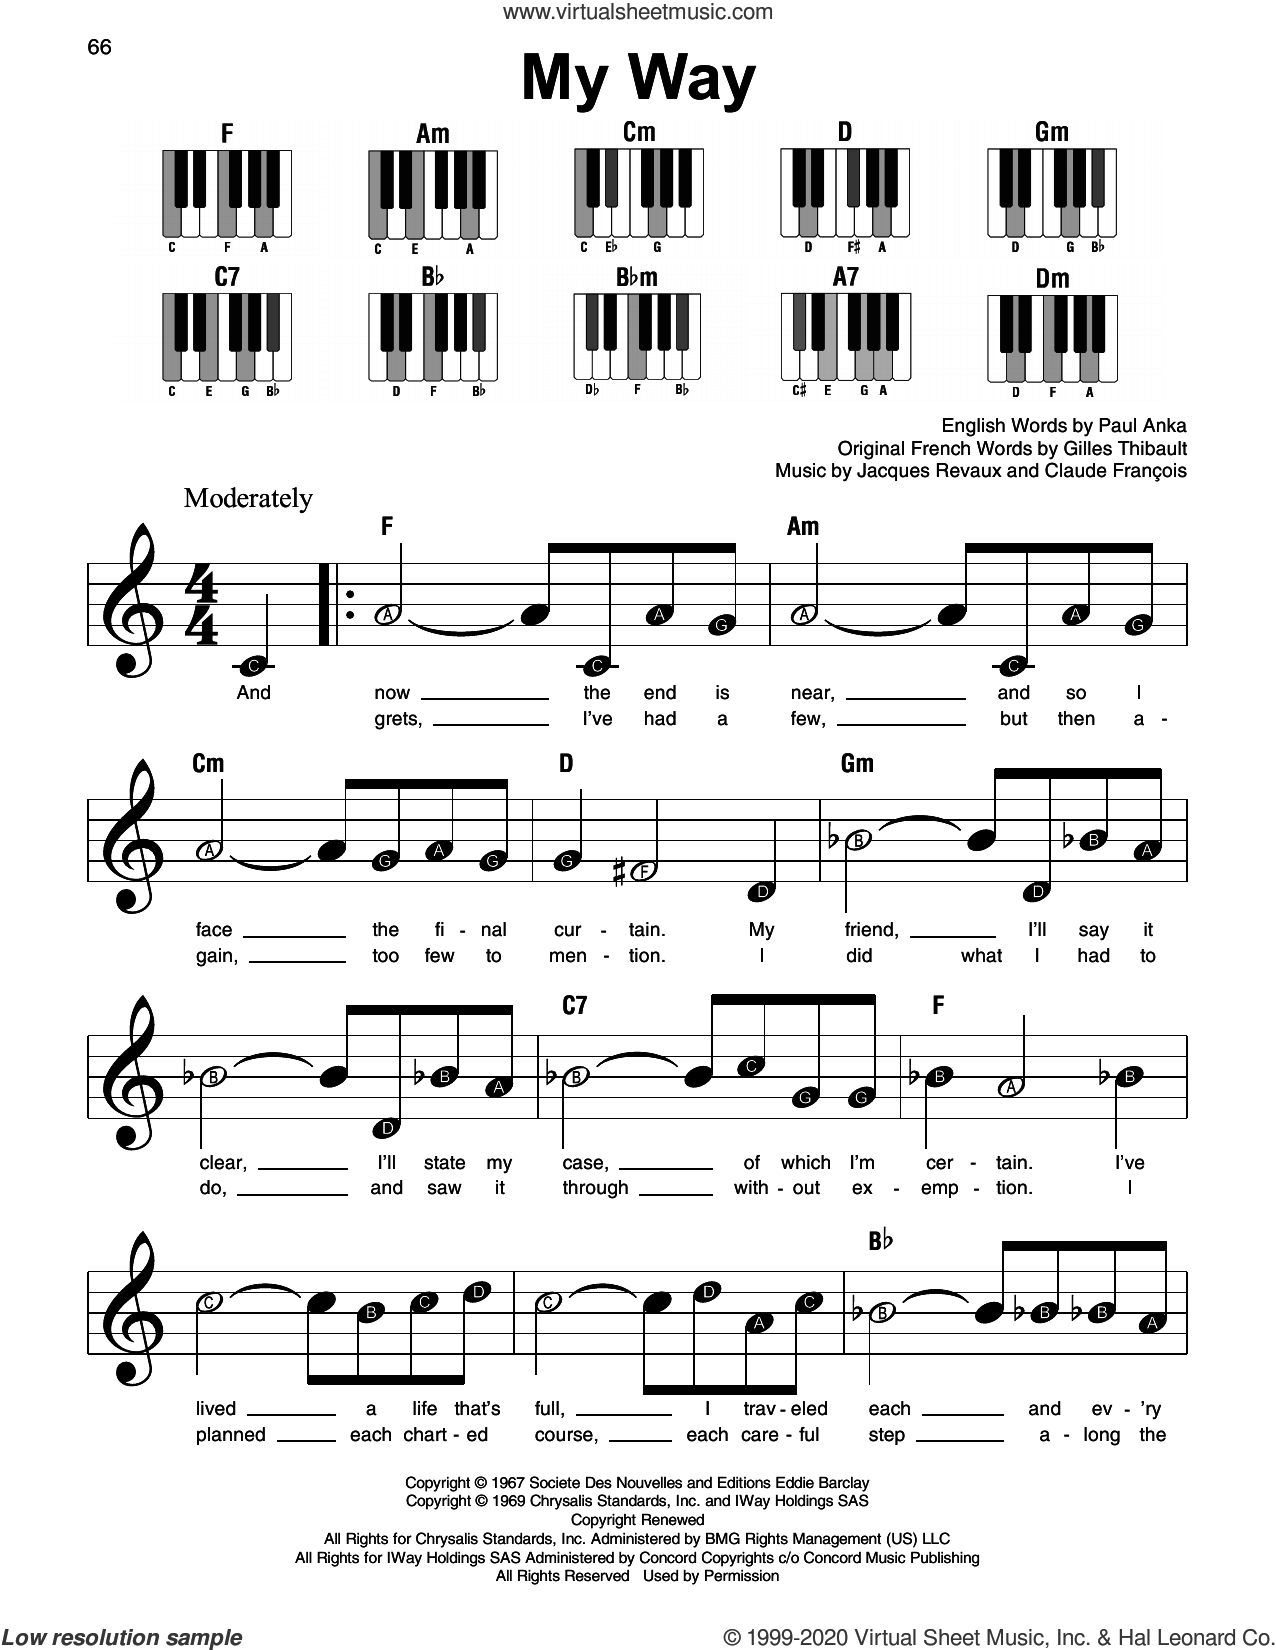 My Way sheet music for piano solo by Frank Sinatra, Claude Francois, Gilles Thibault, Jacques Revaux and Paul Anka, beginner skill level